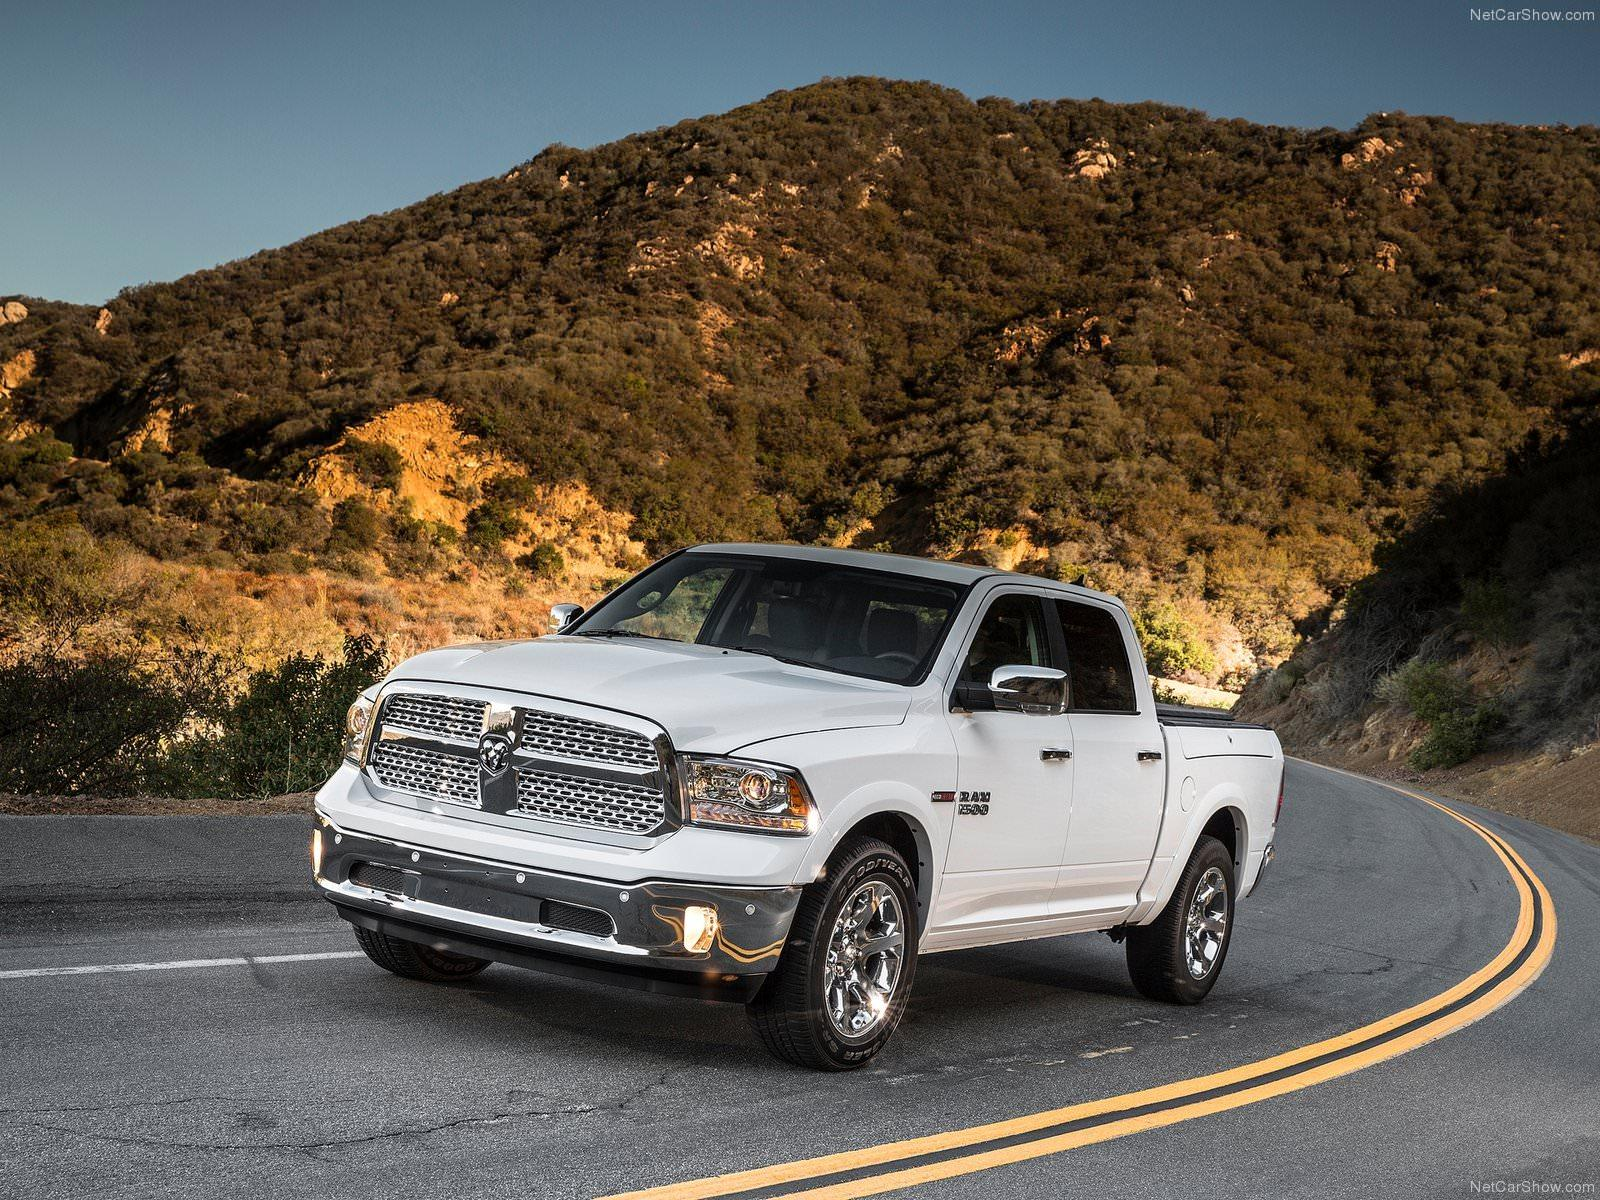 White Dodge Ram 1500 Wallpaper Download #7398 - Download Page ...